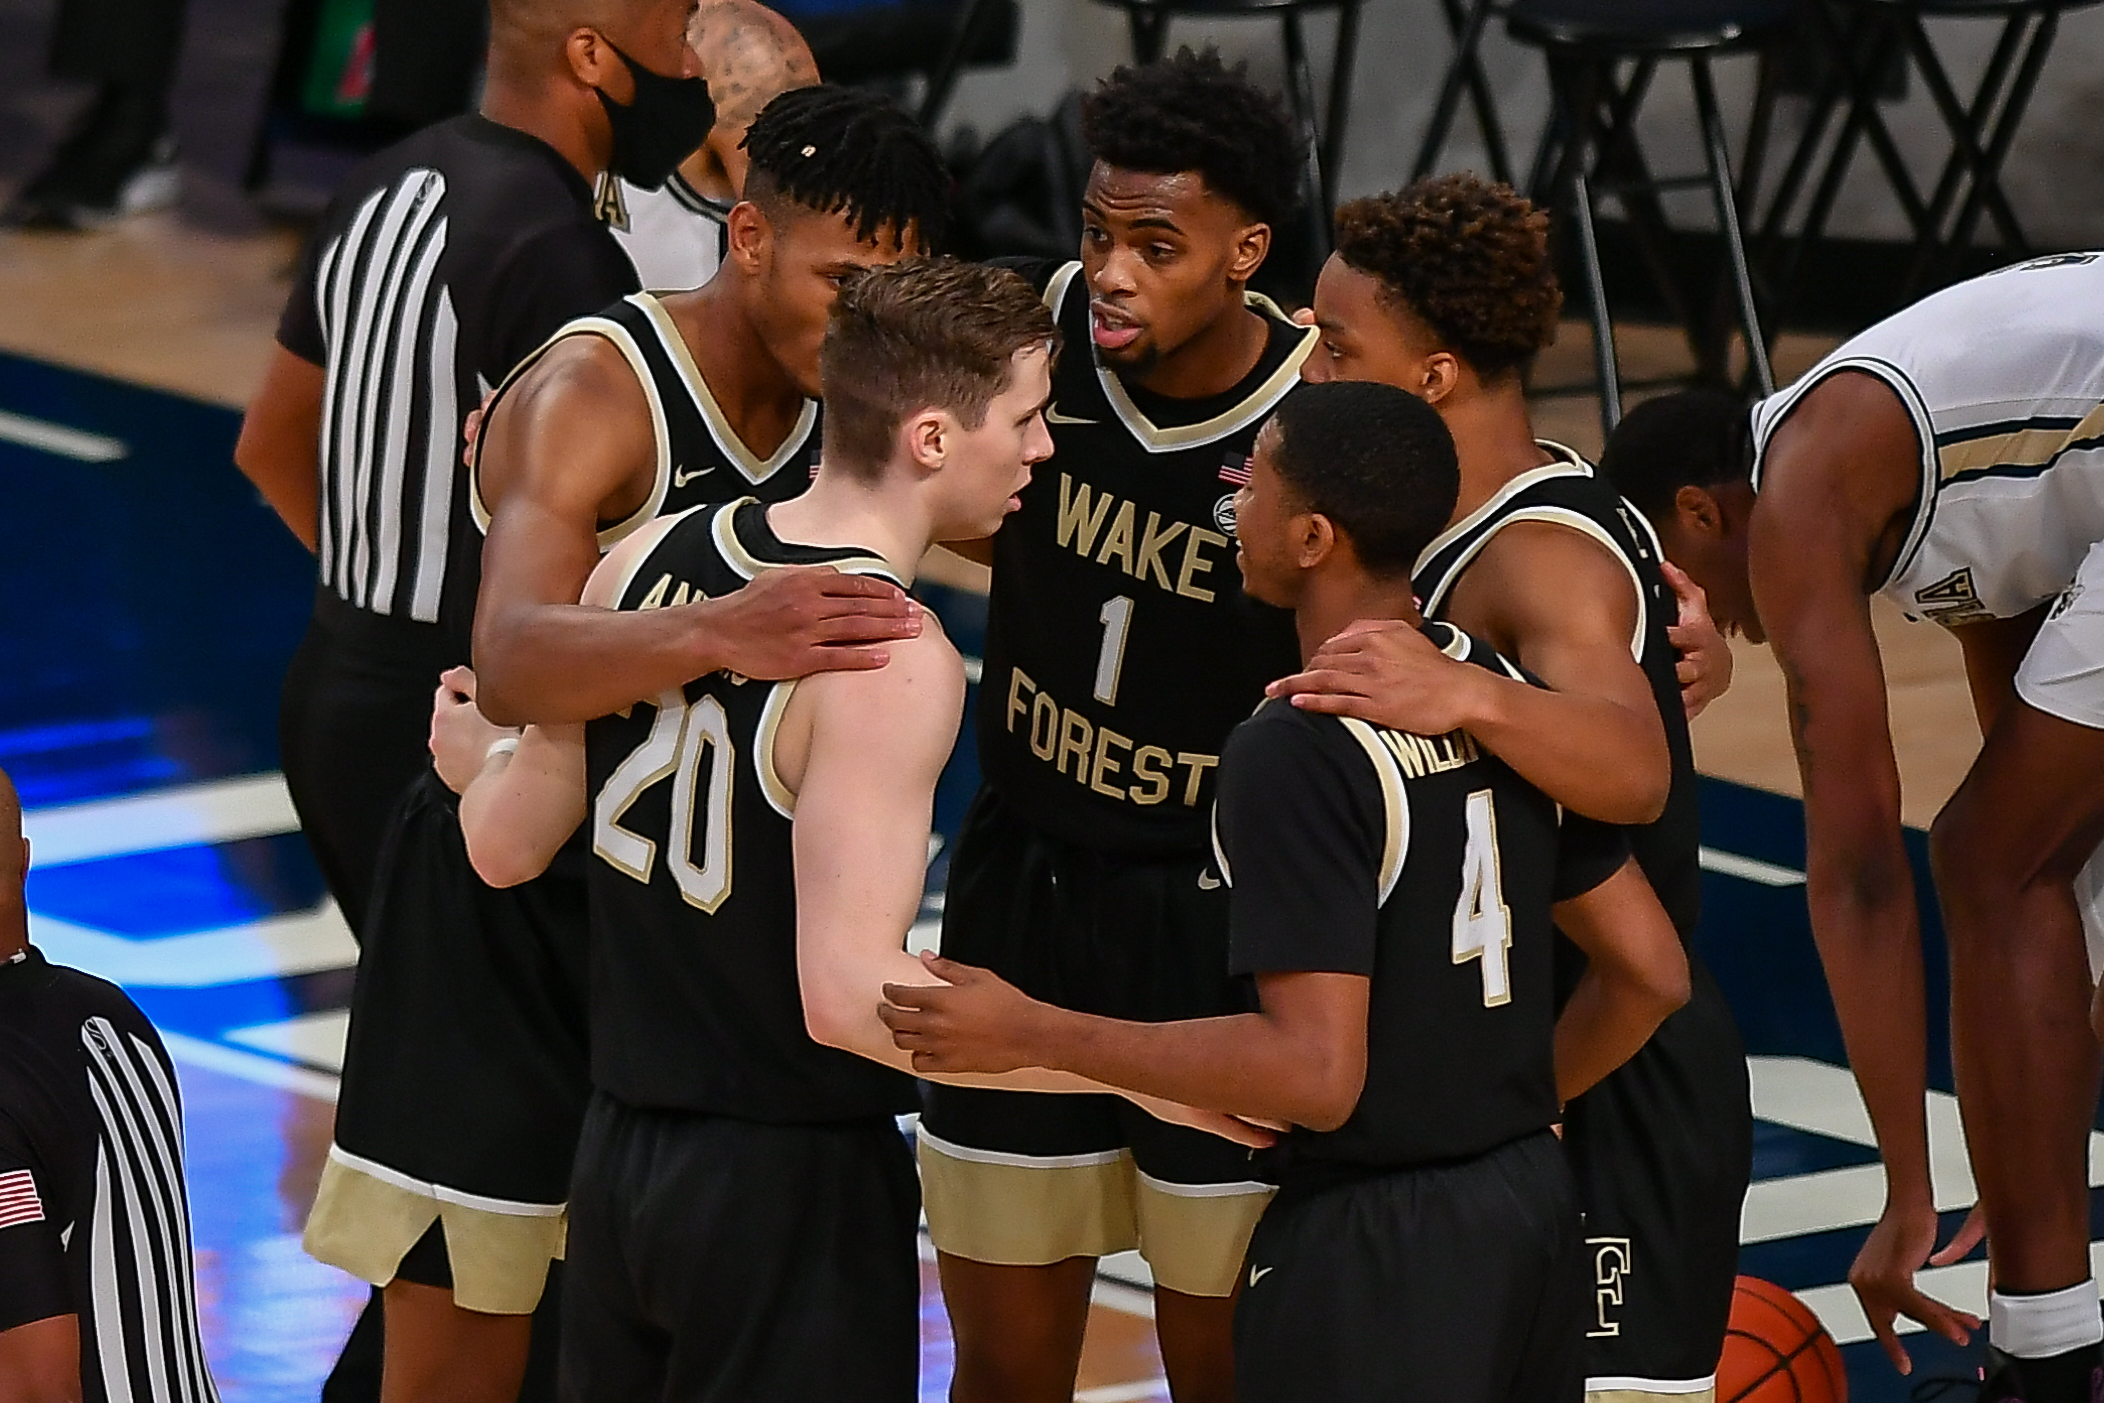 COLLEGE BASKETBALL: JAN 03 Wake Forest at Georgia Tech